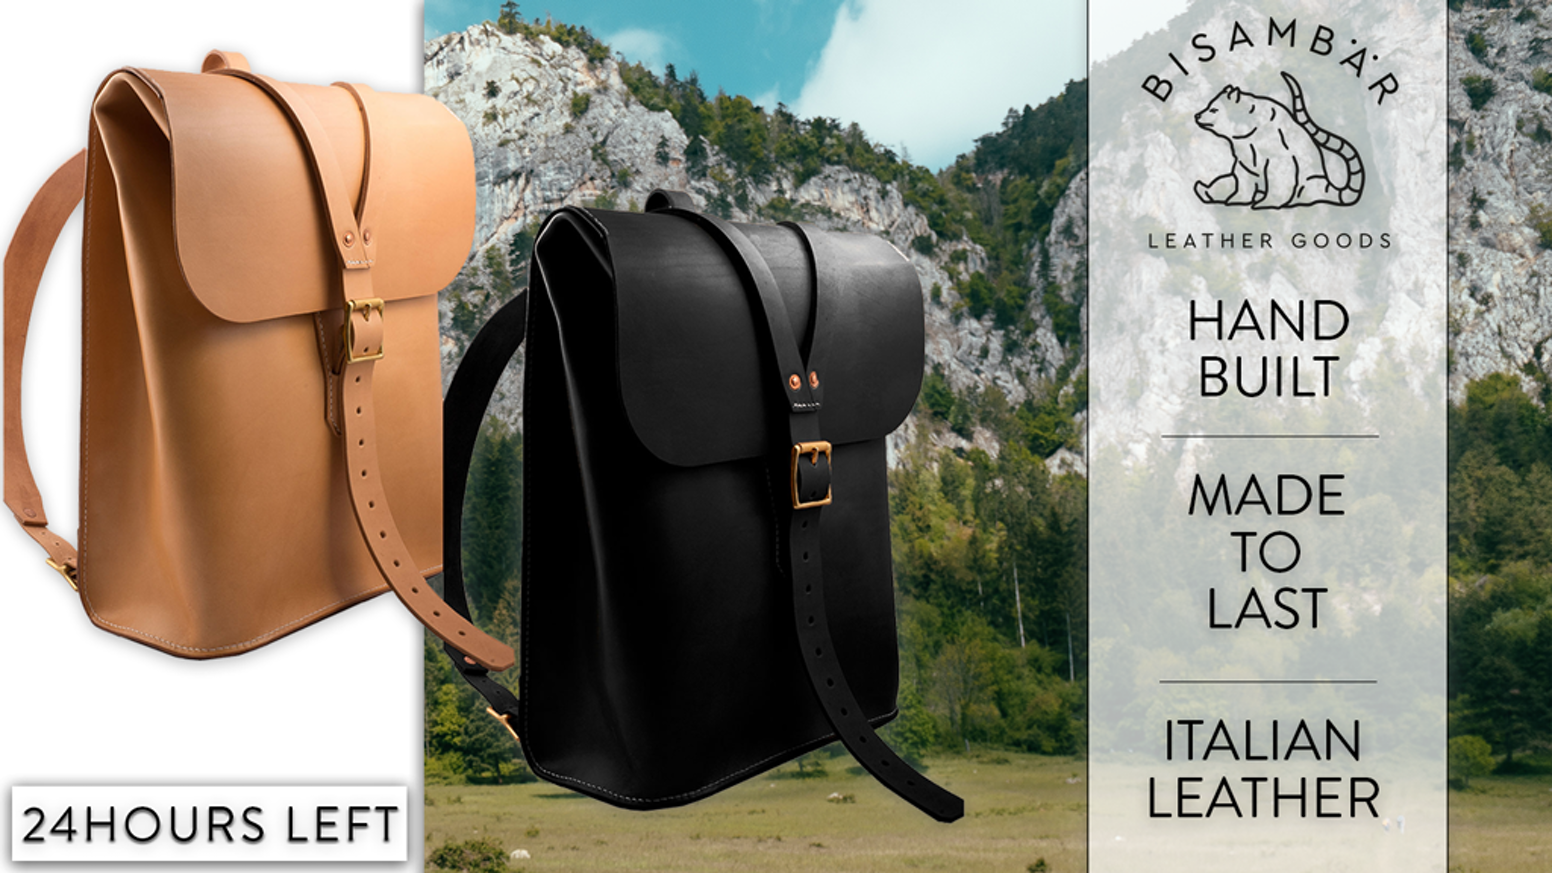 Built in Austria | Full-grain Italian leather | Eco-Friendly and sustainable | Minimalistic Design - This bag will last a lifetime!